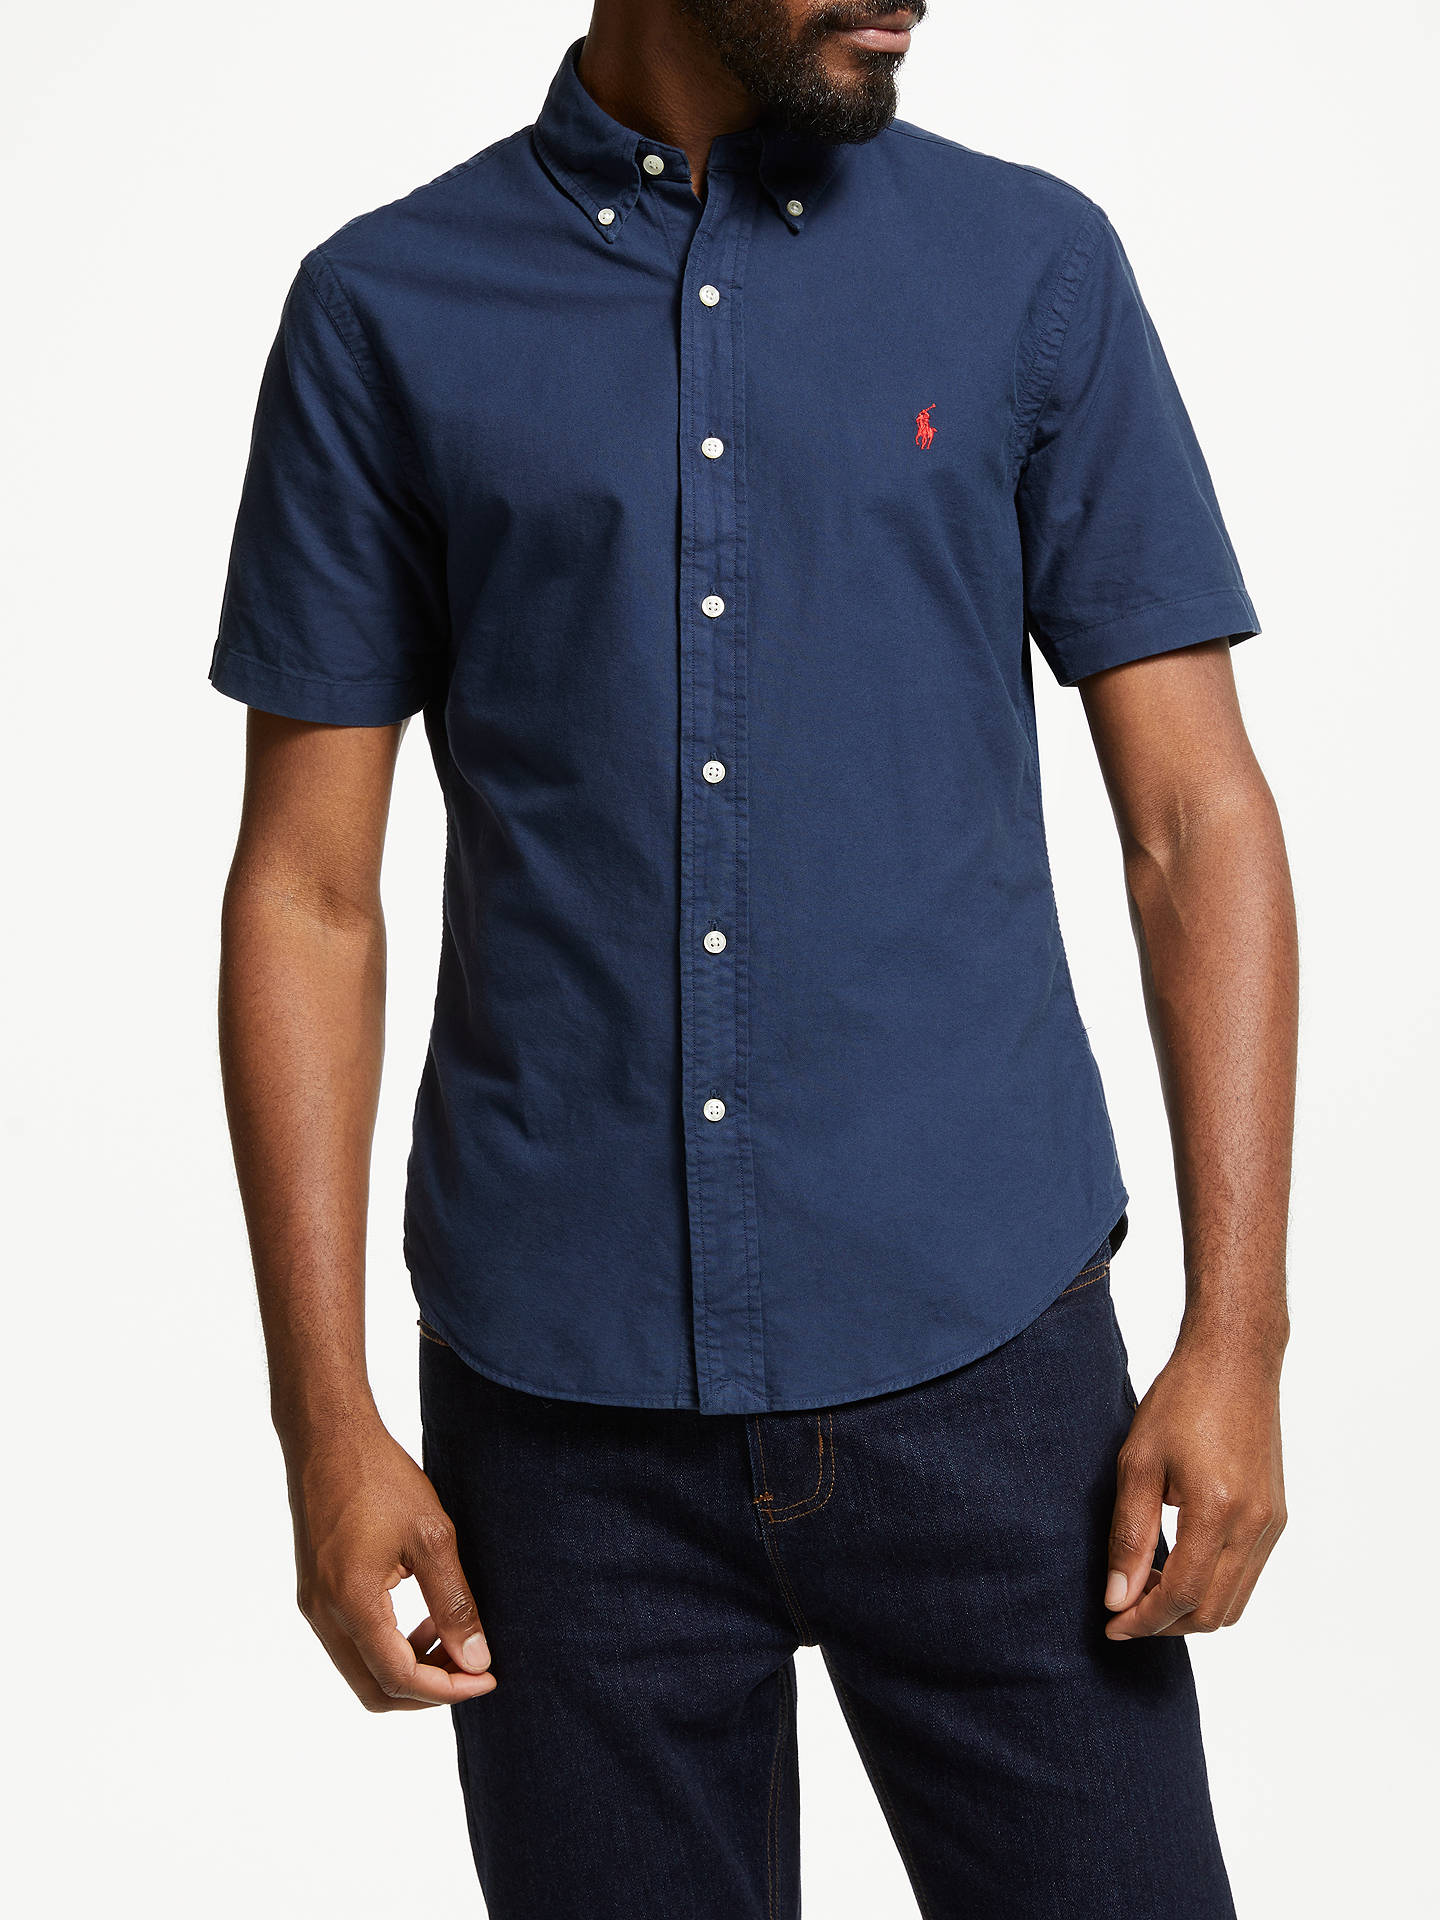 8db5a98564 Polo Ralph Lauren Short Sleeve Slim Fit Shirt, Navy at John Lewis ...